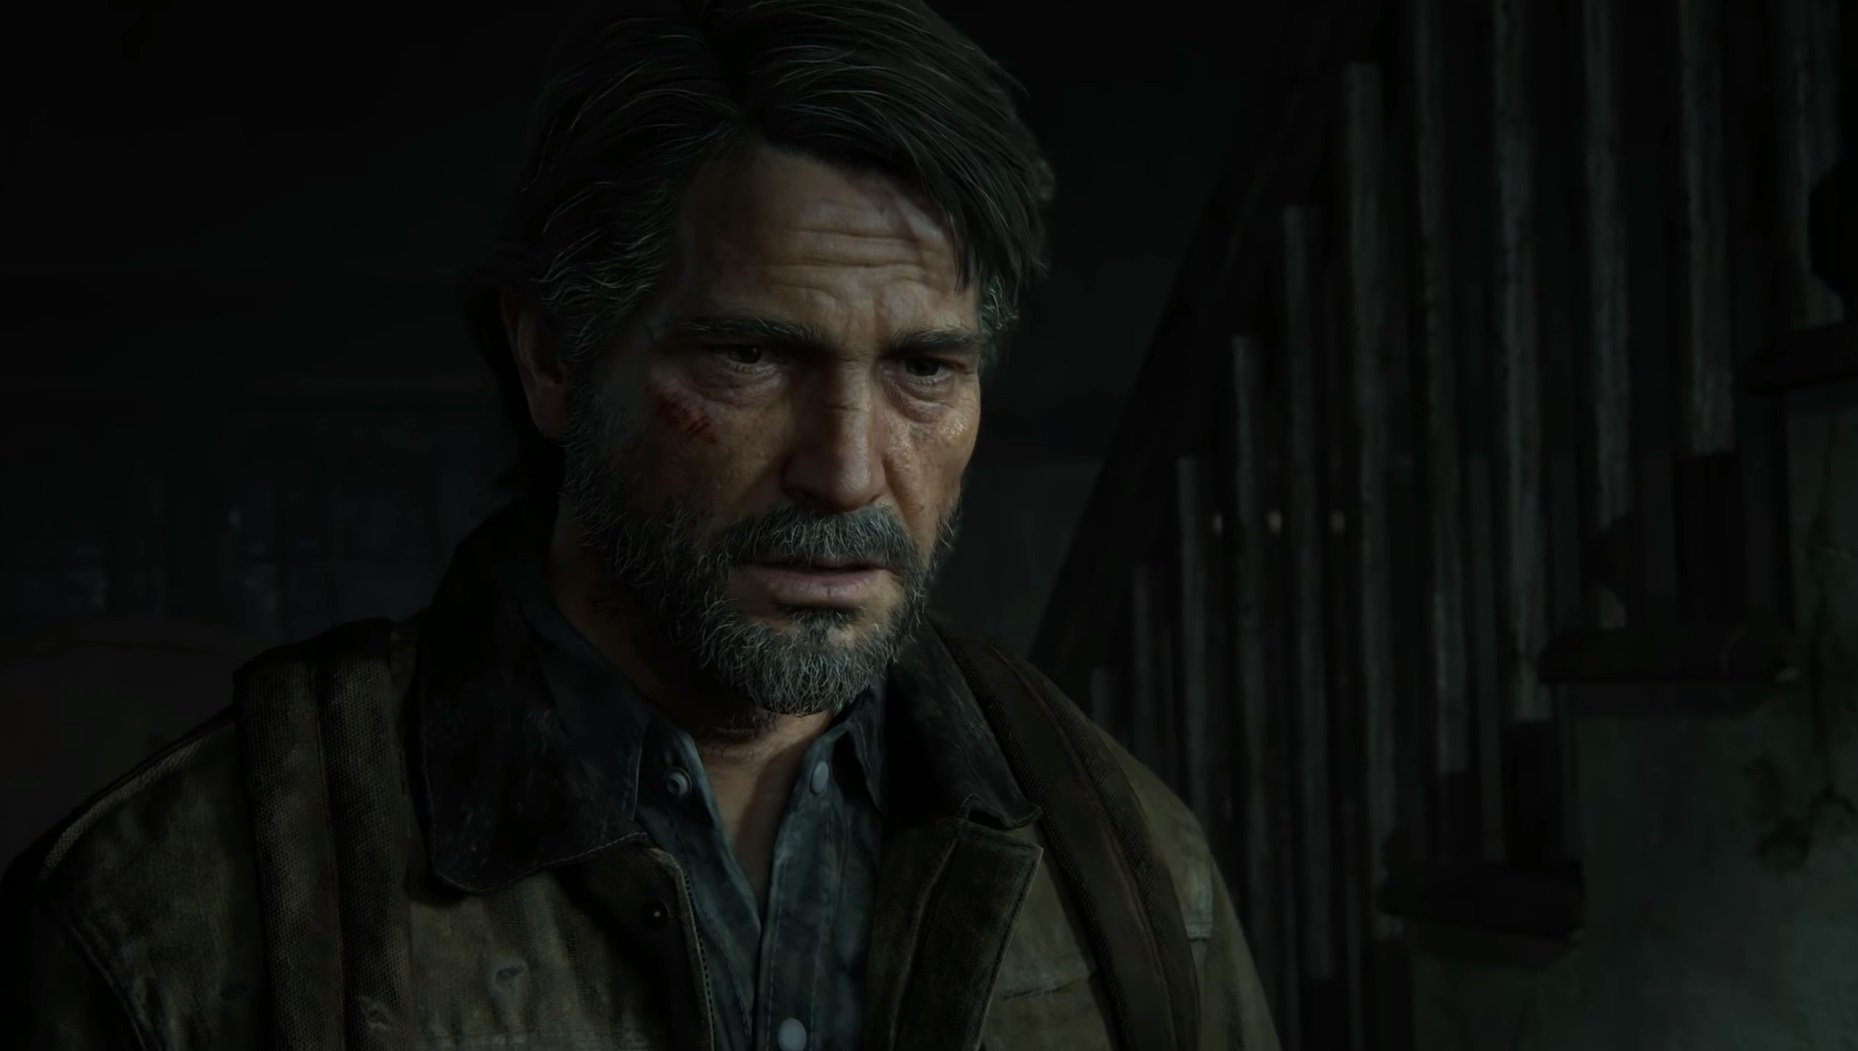 Guess who's back in The Last of Us Part II? It's Joel!